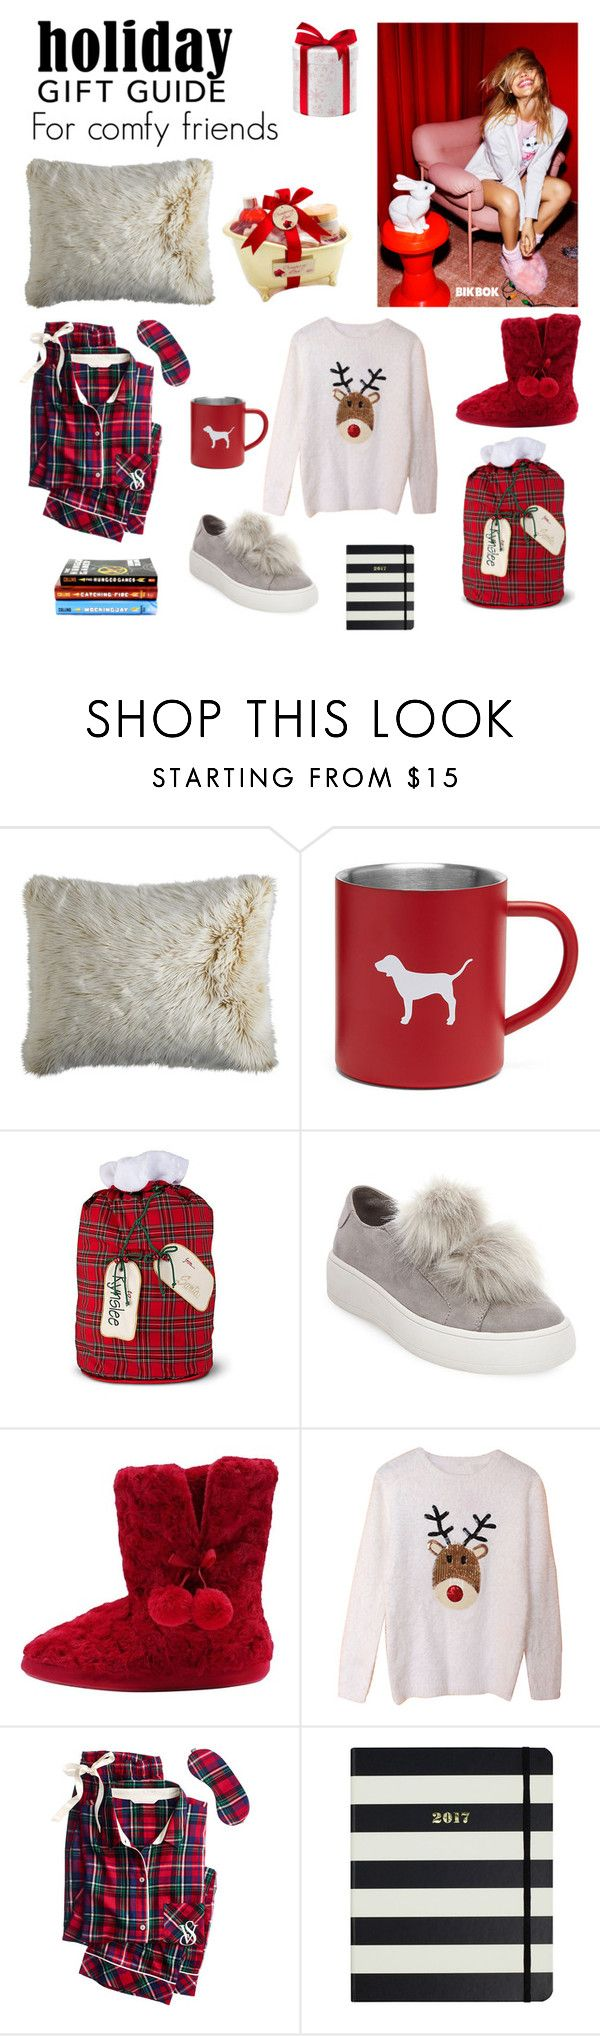 """Holiday gift guie 2"" by dorey on Polyvore featuring Pier 1 Imports, Improvements, Steve Madden, M&Co, Victoria's Secret, Kate Spade and Bik Bok"